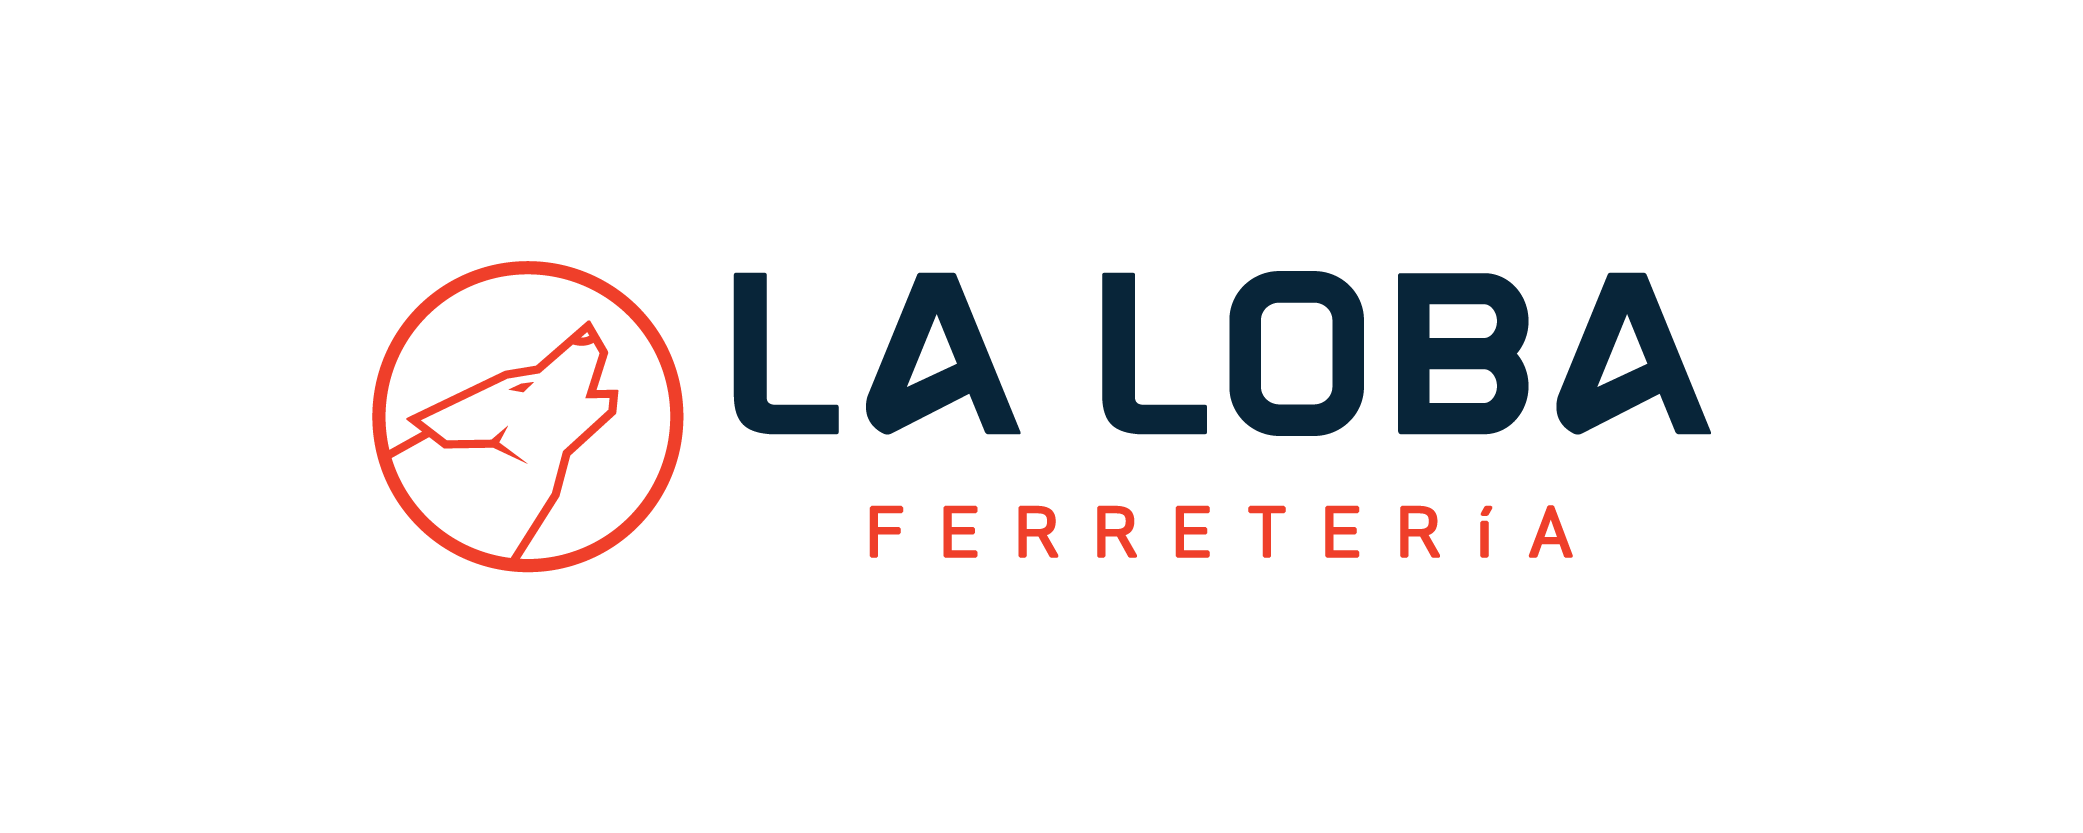 https://storage.googleapis.com/instapage-user-media/eb60bf54/18024236-0-Ferreteria-la-loba